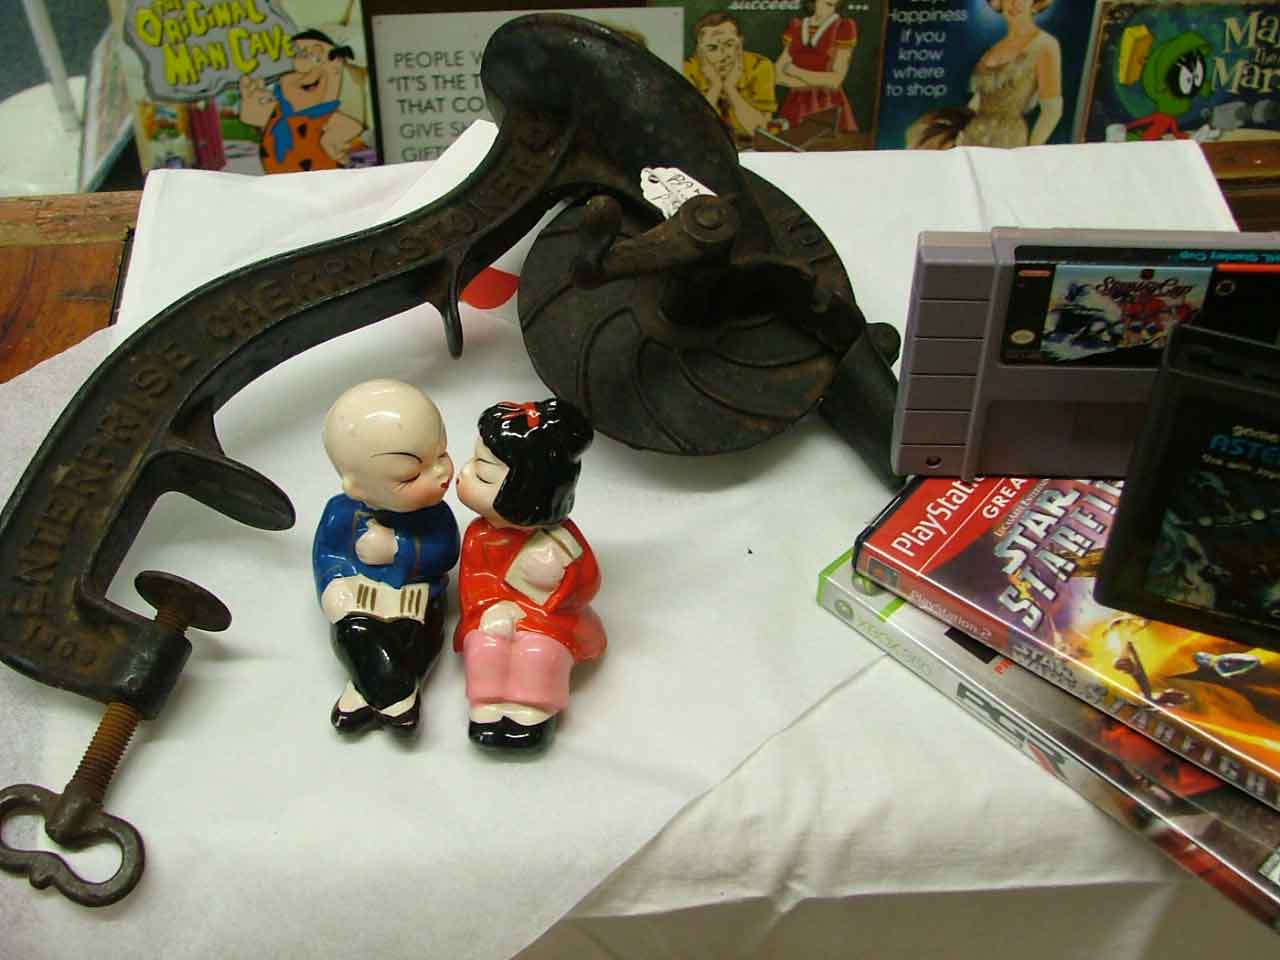 Kissing figurines, cherry pitter, and video games - make for some fun treasures at Bahoukas Antiques